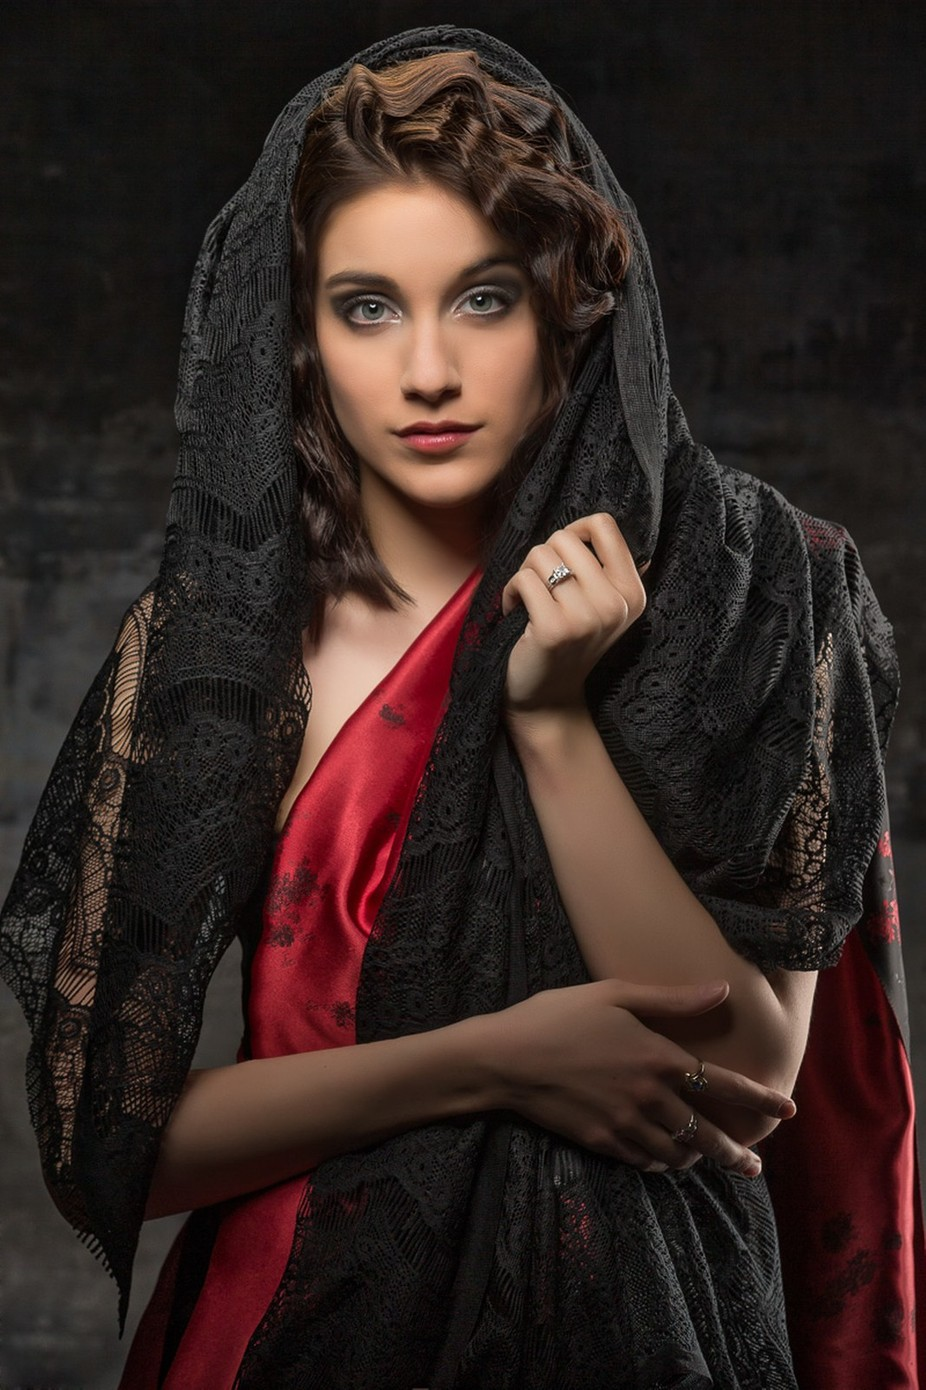 just playing with fabric by danrowe - Celebrating Fashion Photo Contest